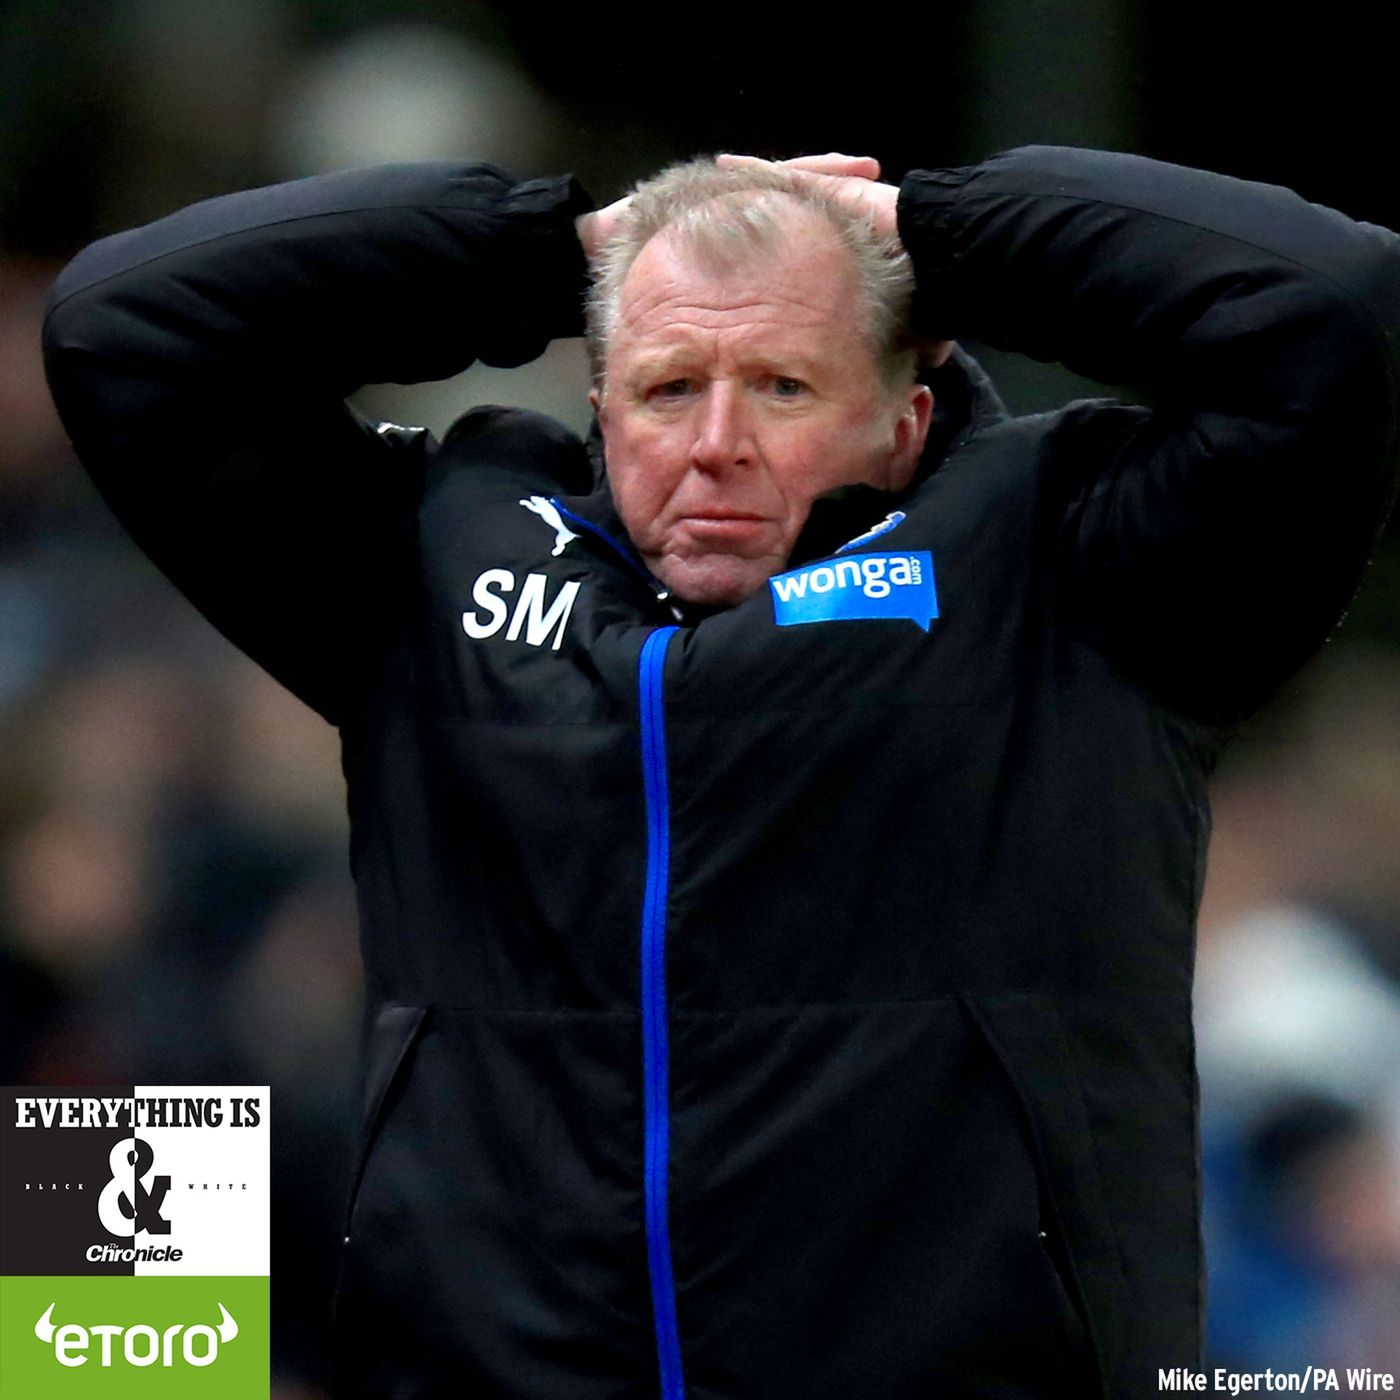 REVISITED - The inside story of Steve McClaren at NUFC